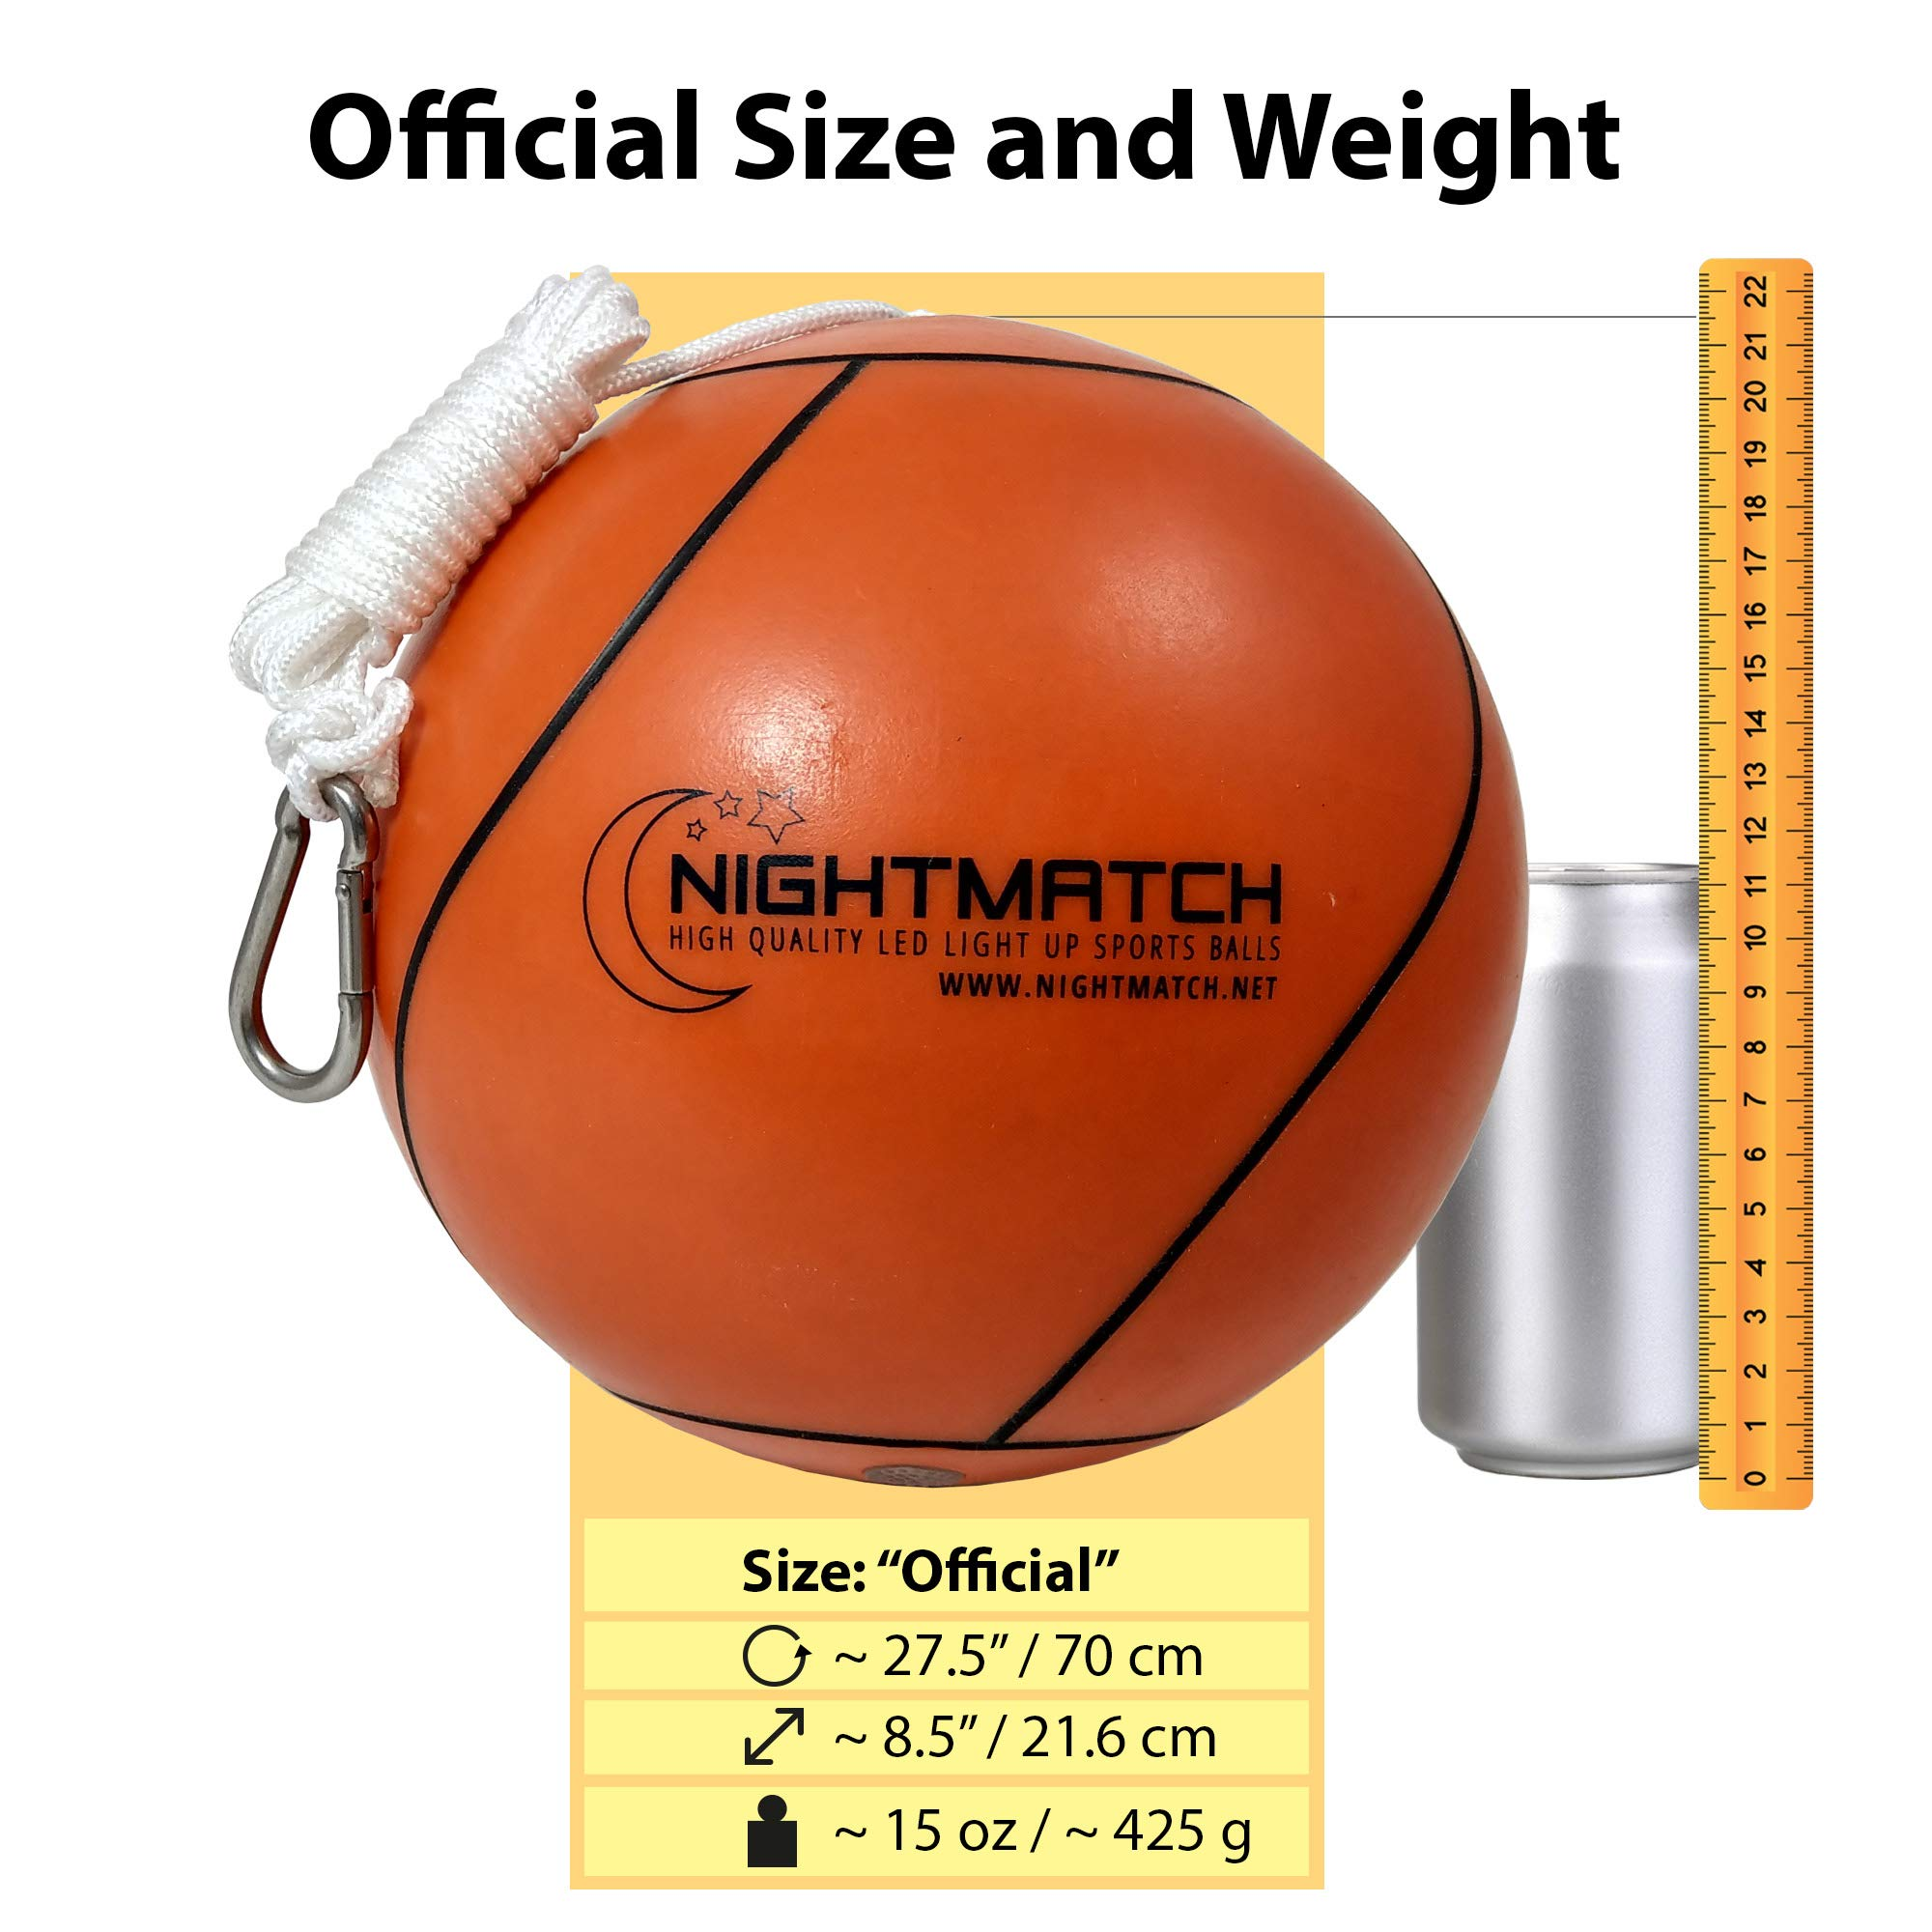 NIGHTMATCH Light Up Tetherball INCL. Ball Pump & Spare Batteries - Inside LED Lights up When Bounced - Glow in The Dark Tetherball - Tether Ball - Official Size & Weight by NIGHTMATCH (Image #4)